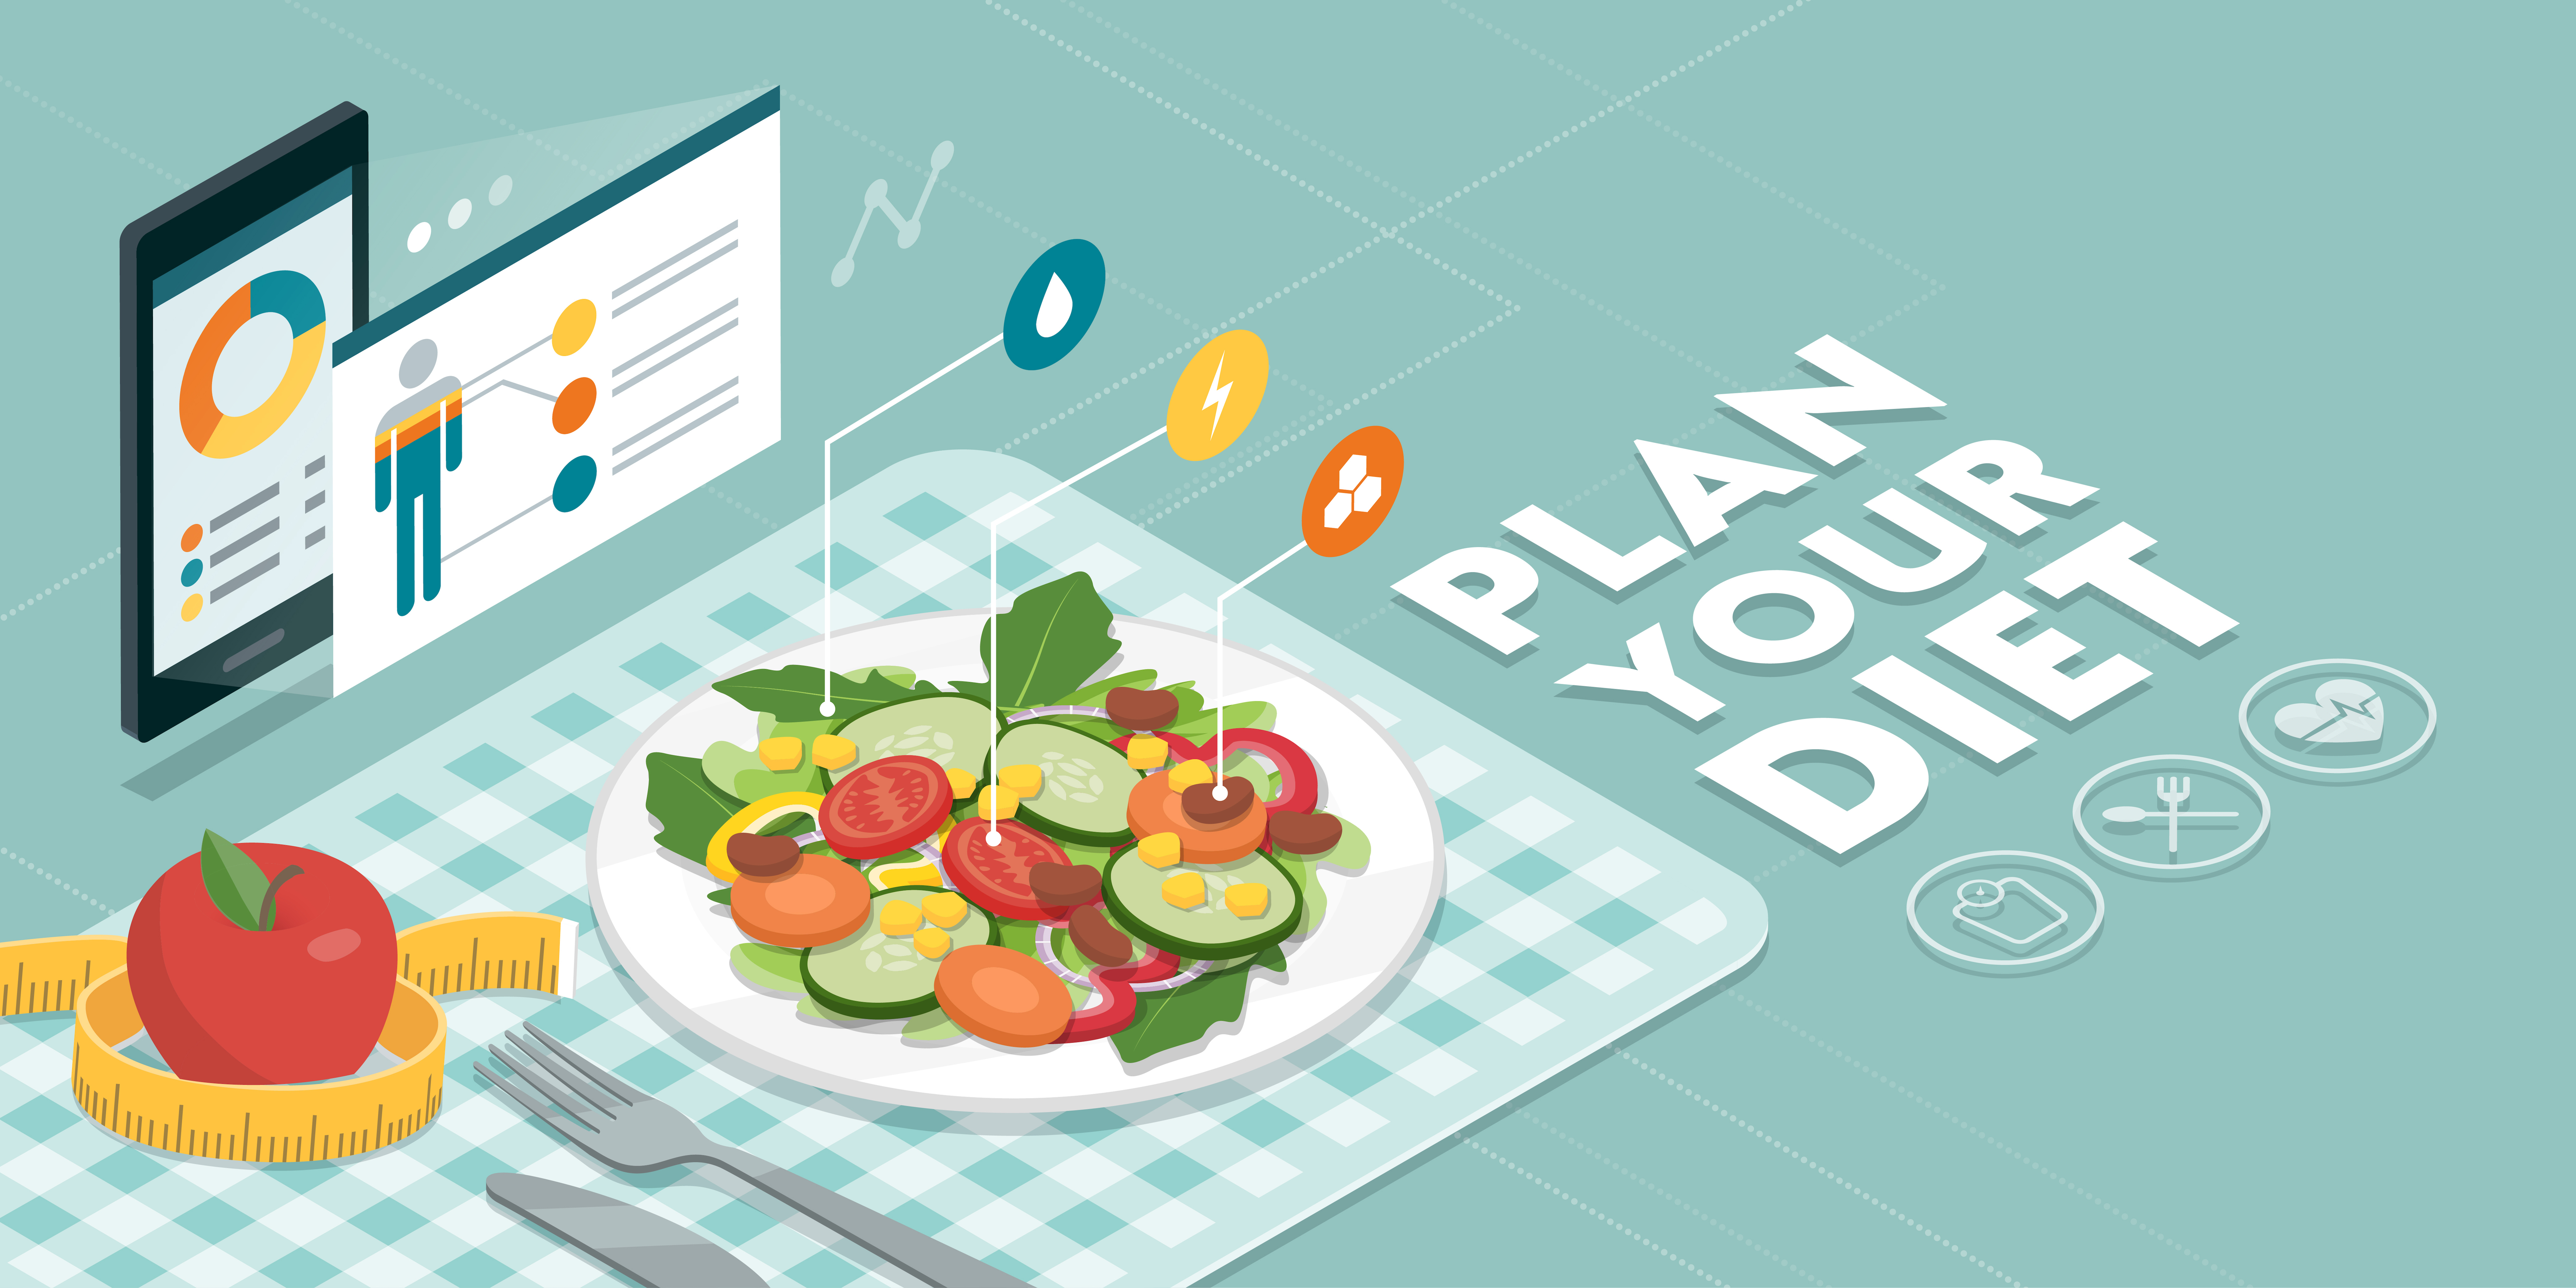 You should plan your diet and meals, to take care about amount of eaten calories!